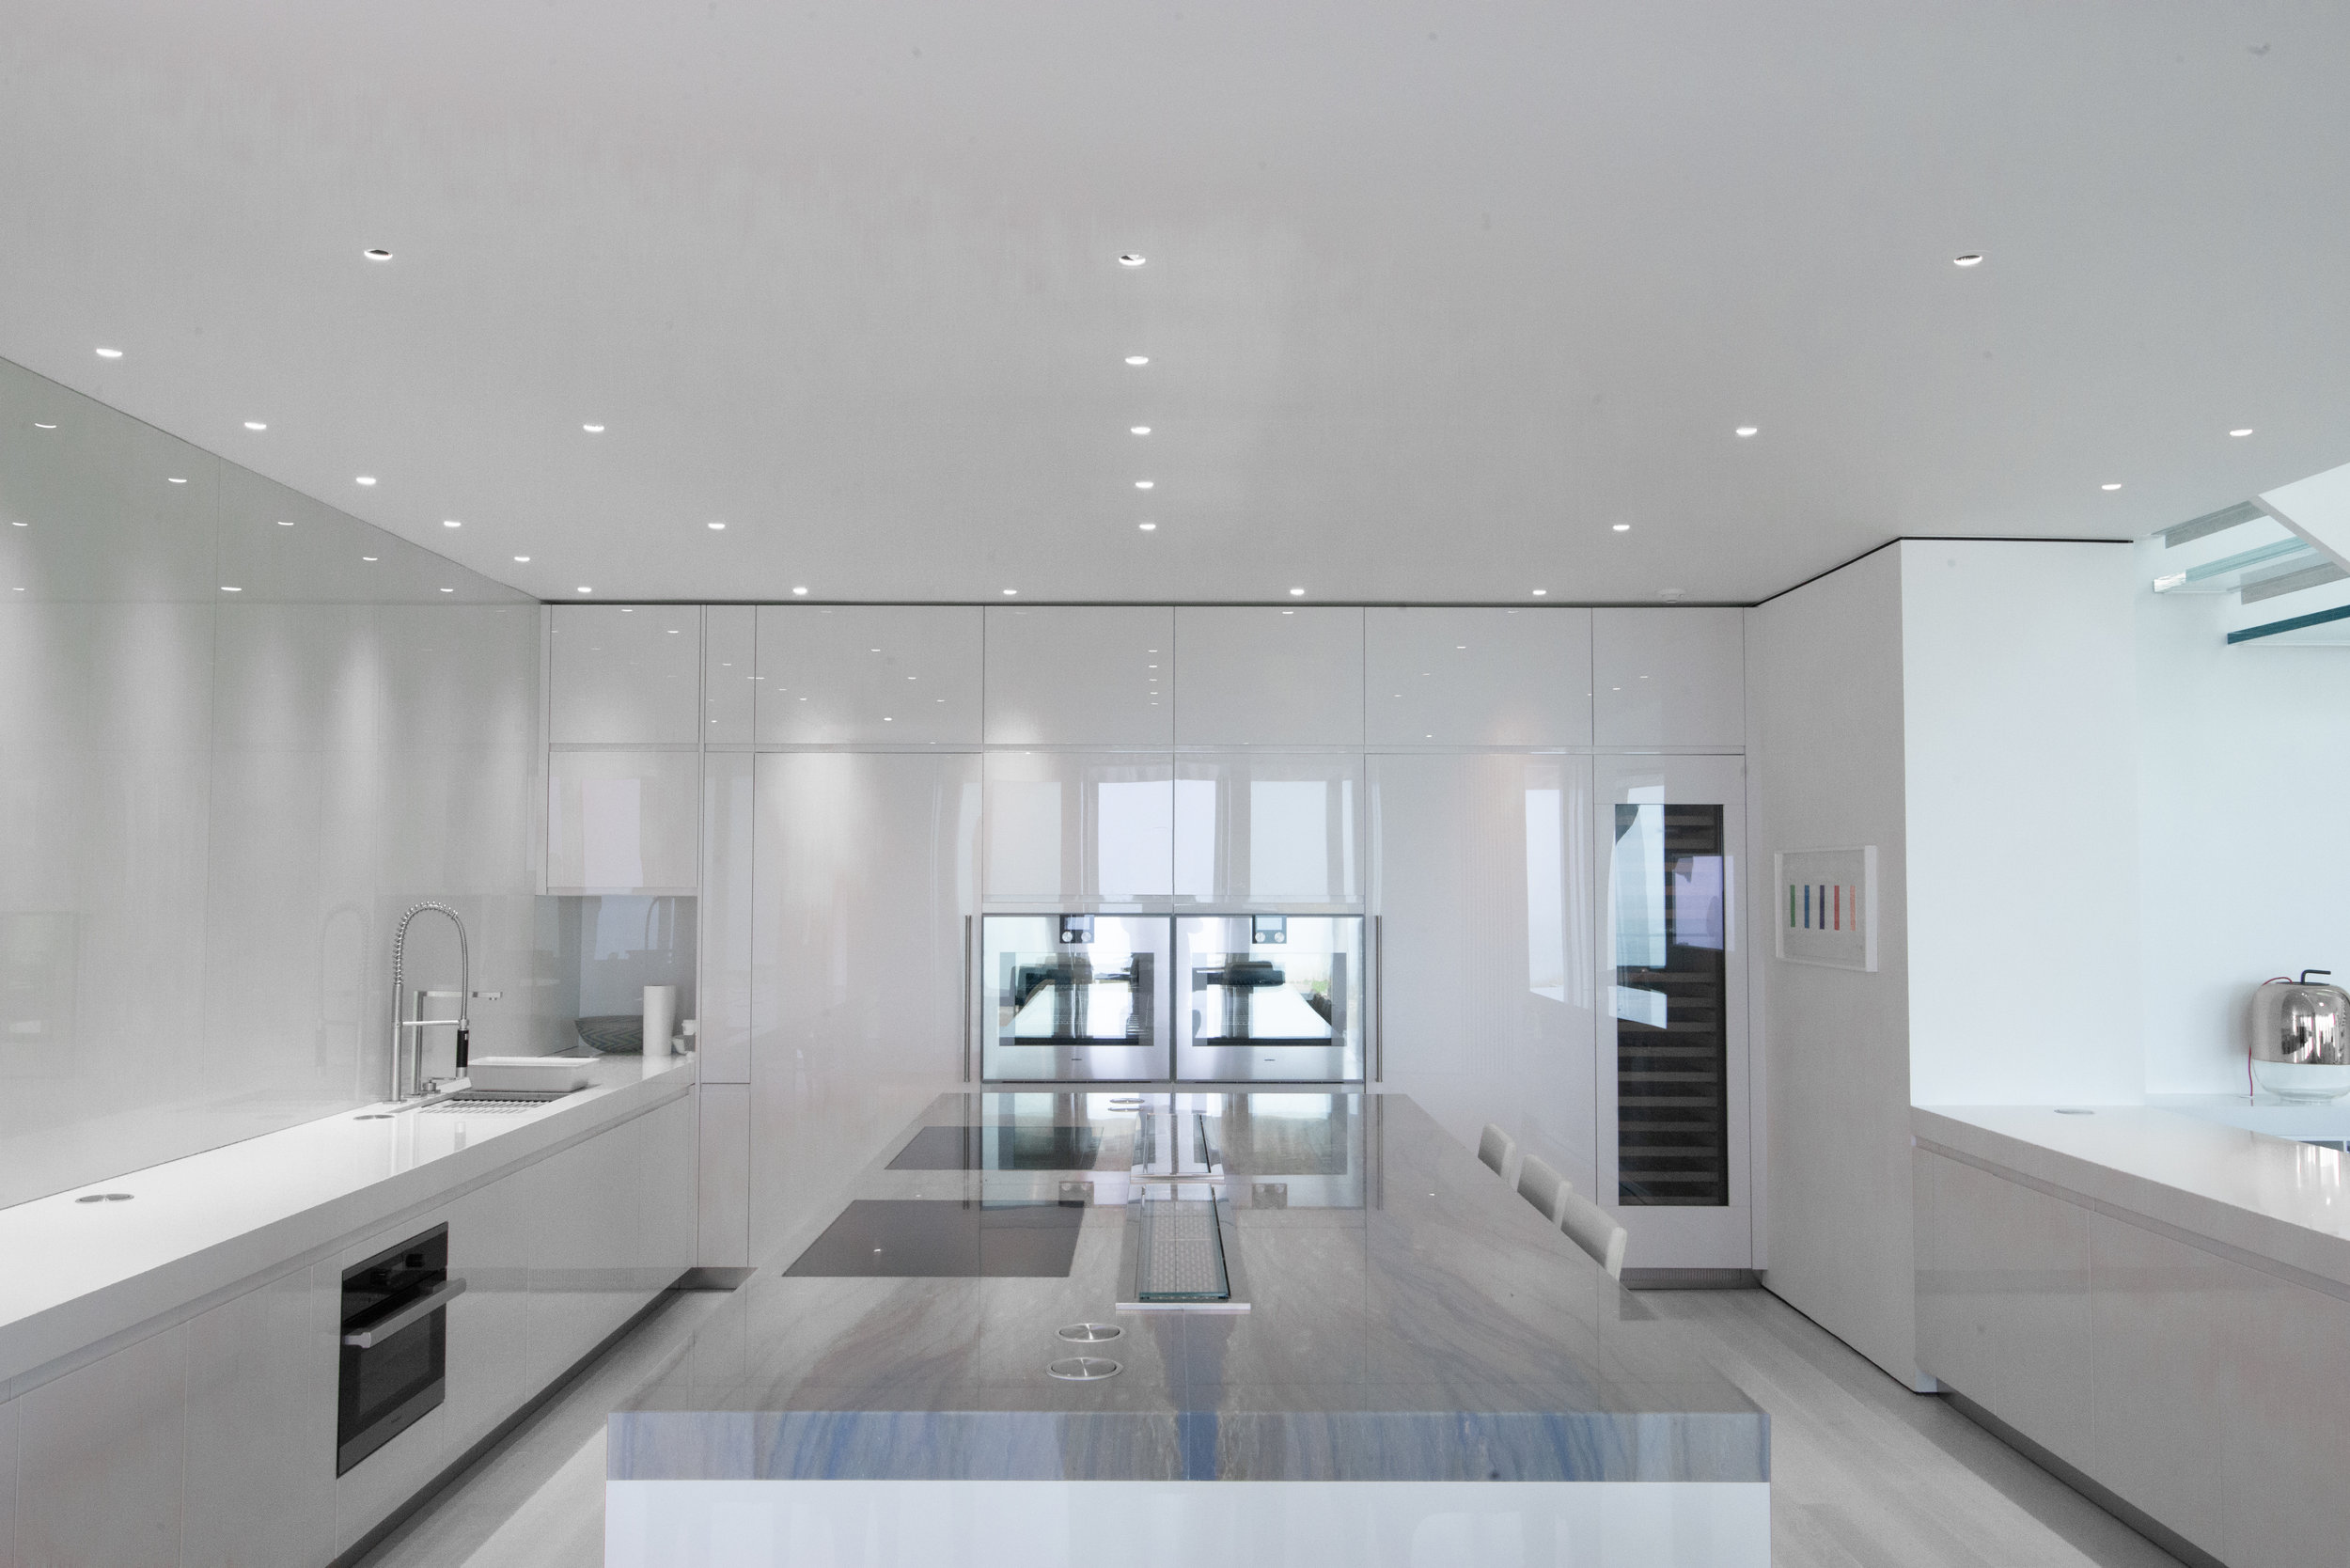 Long, sleek surfaces and ample counter space.